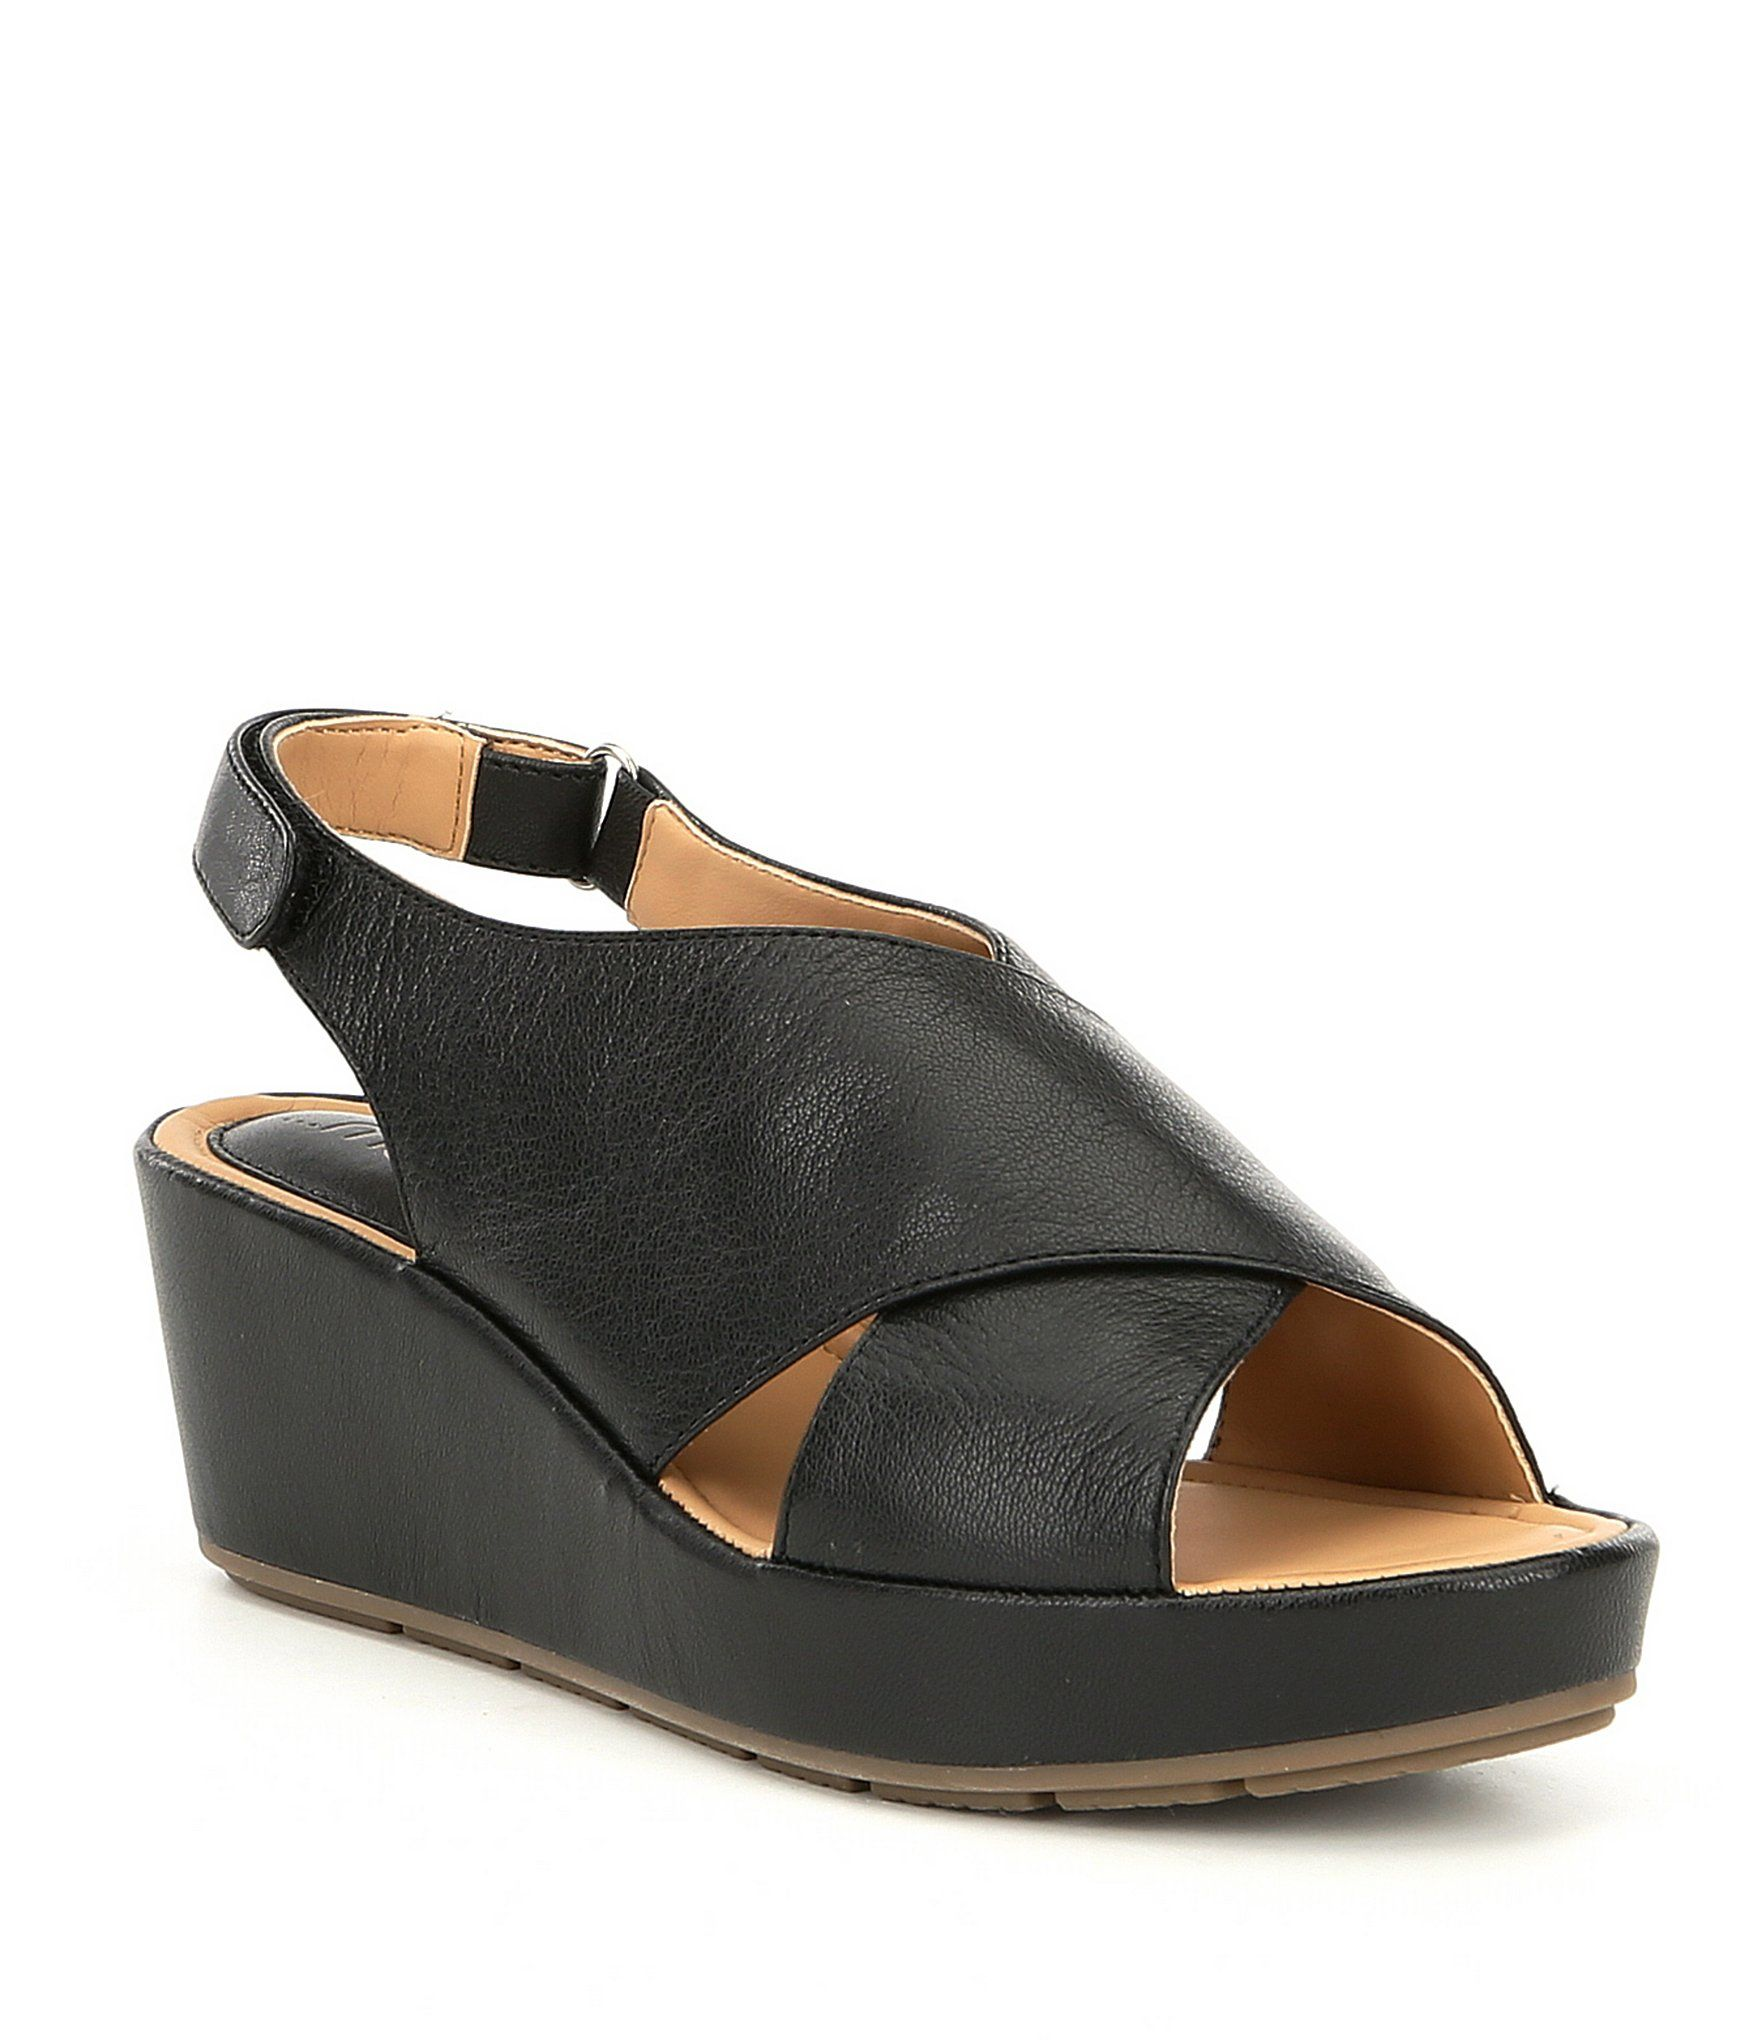 0217278da2 Me Too Arena Leather Wedge Sandals | 1-2 buckle my shoe | Wedge ...